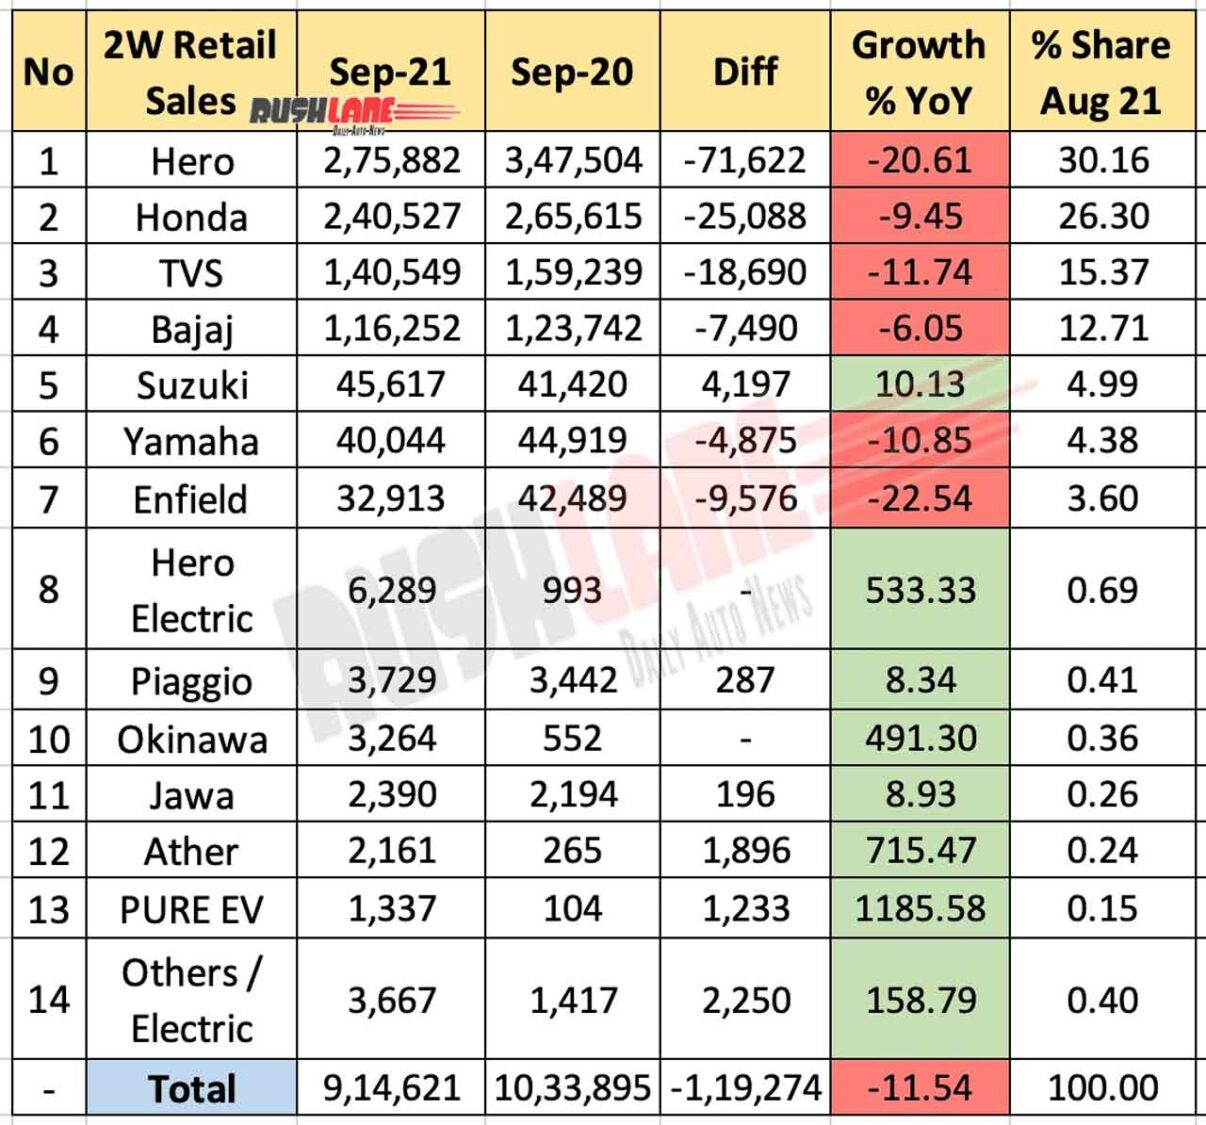 Retail sales of two-wheelers in September 2021 compared to September 2020 (year-on-year)